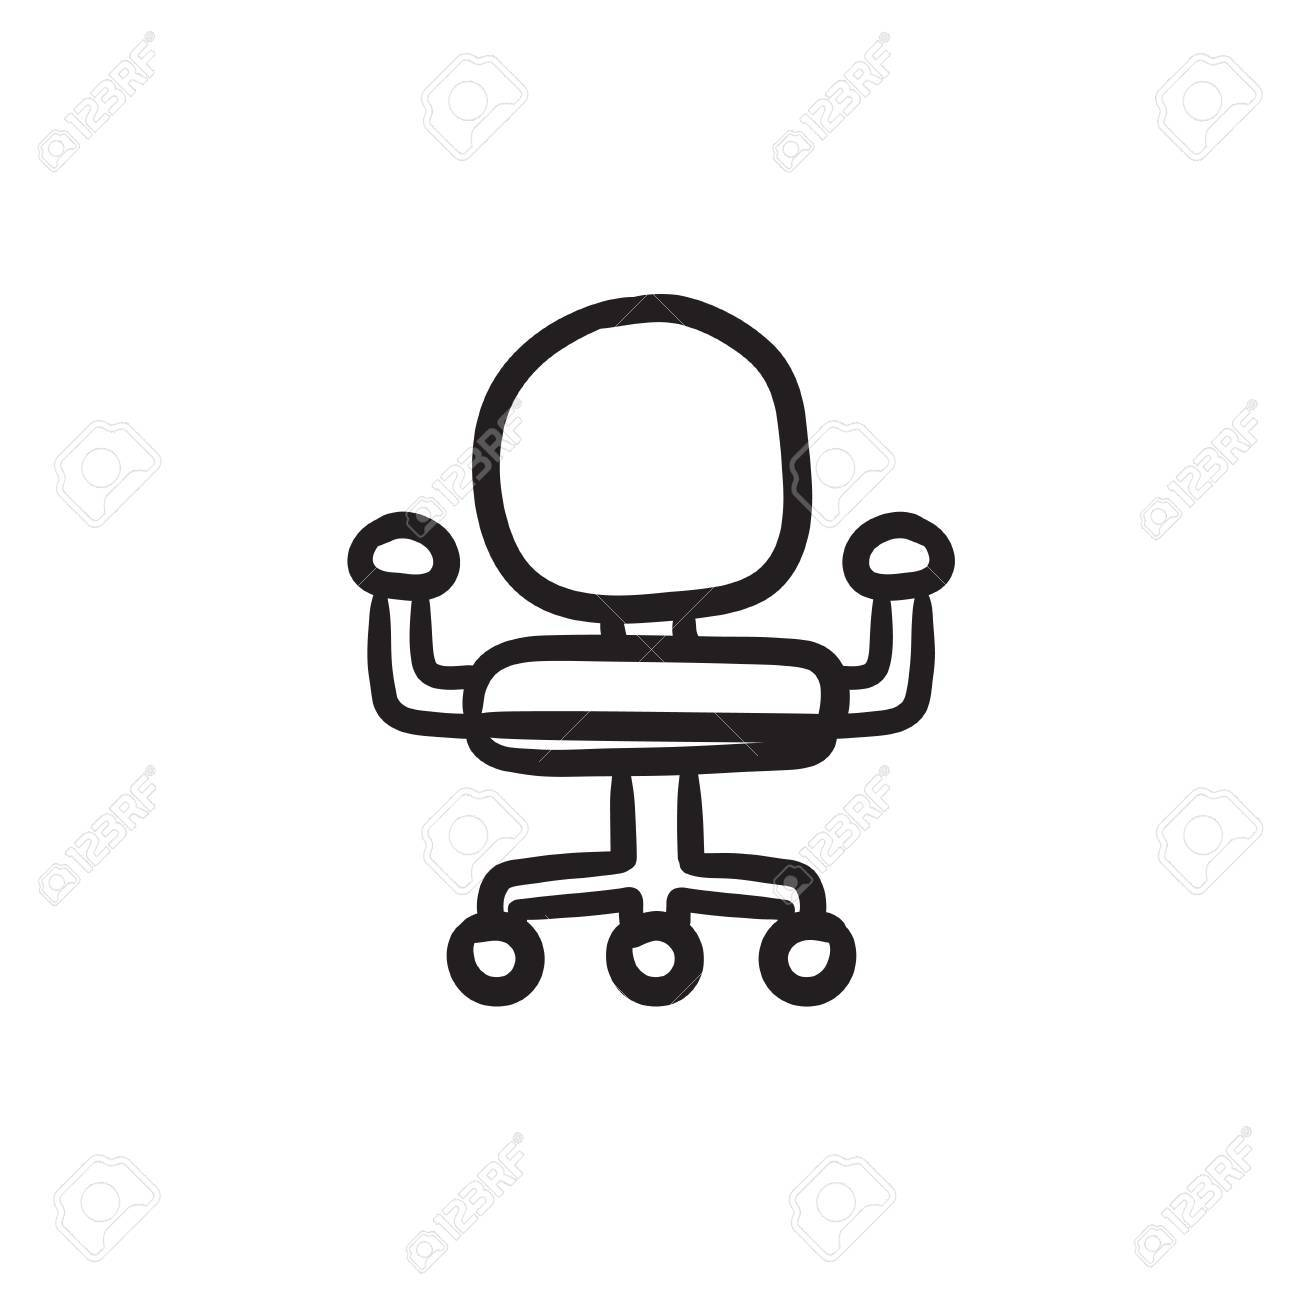 Bürostuhl comic  Office chair vector sketch icon isolated on background. Hand..